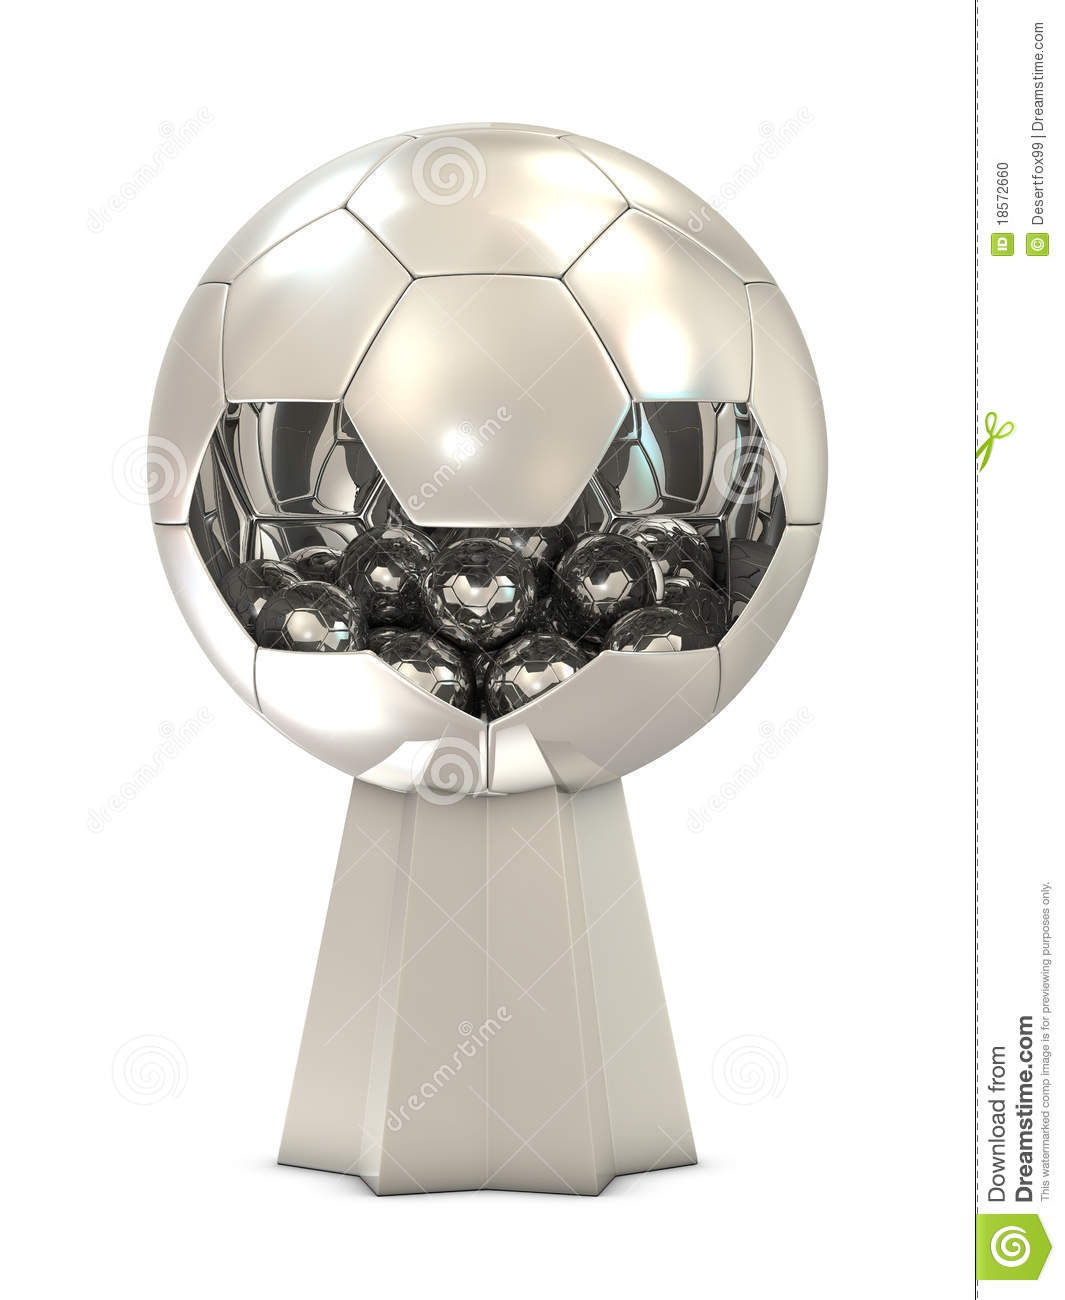 how to draw a soccer trophy